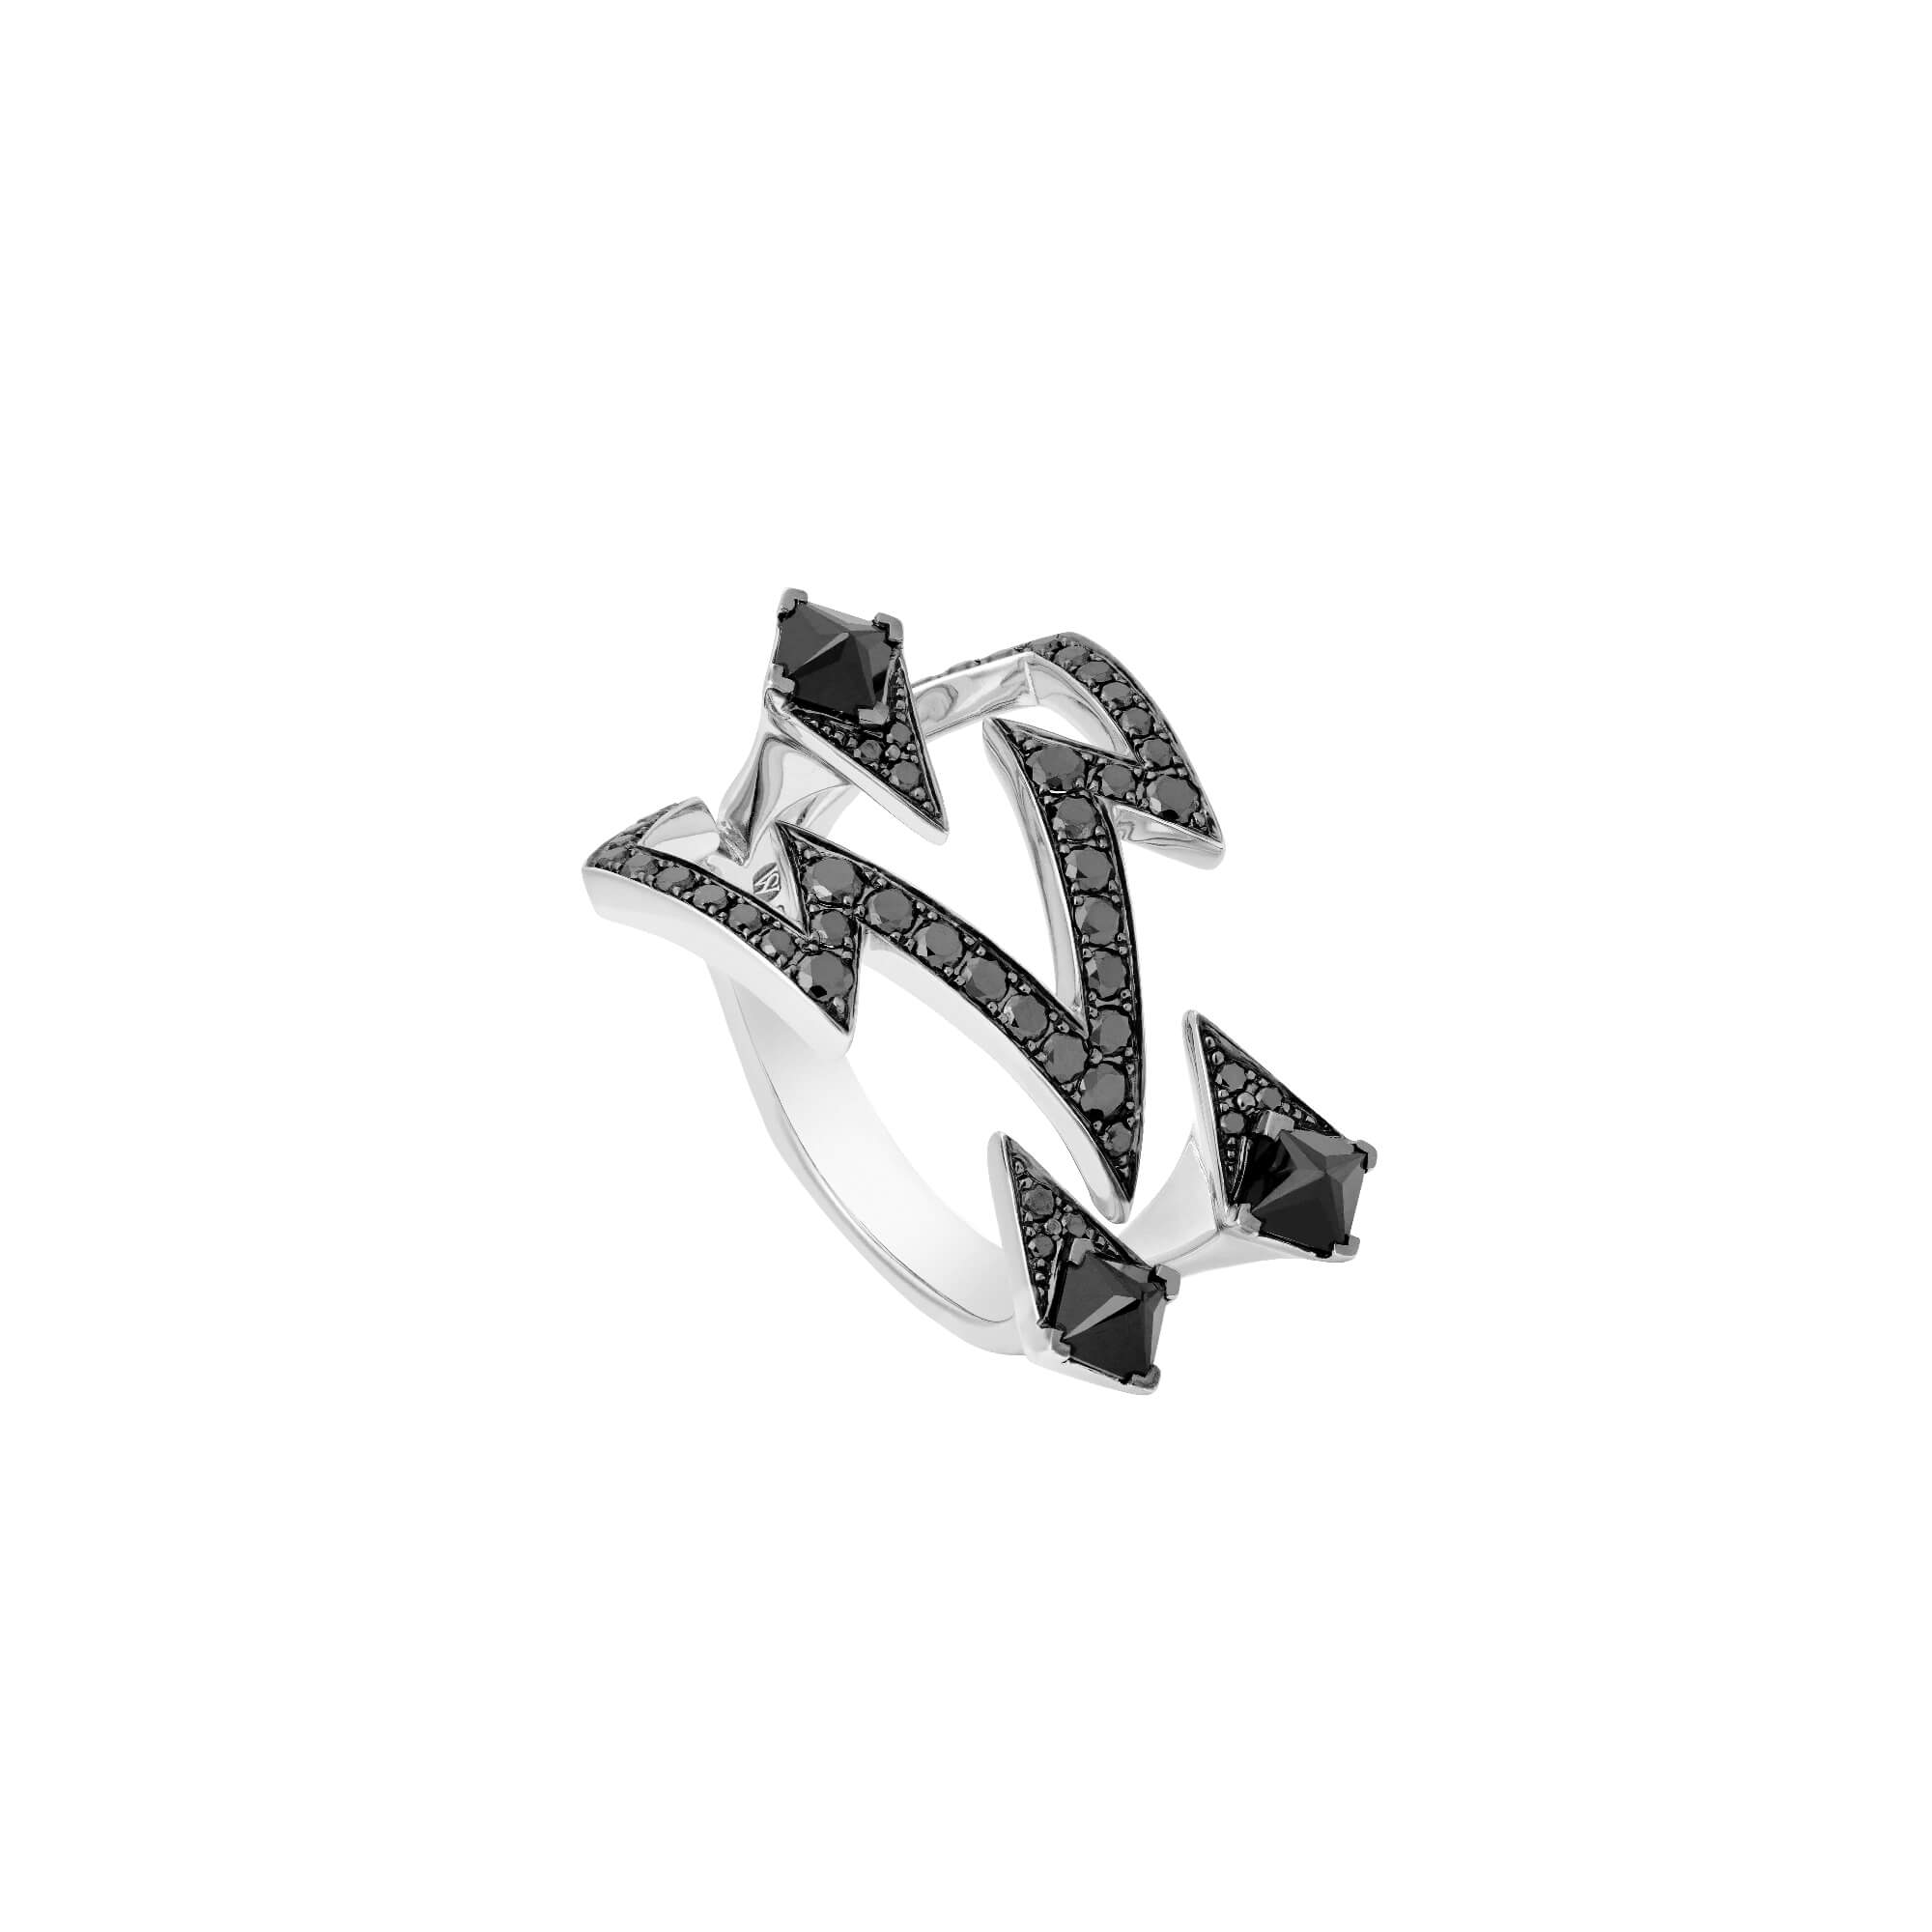 18k White Gold & Black Spinels Bolt Ring | Lady Stardust